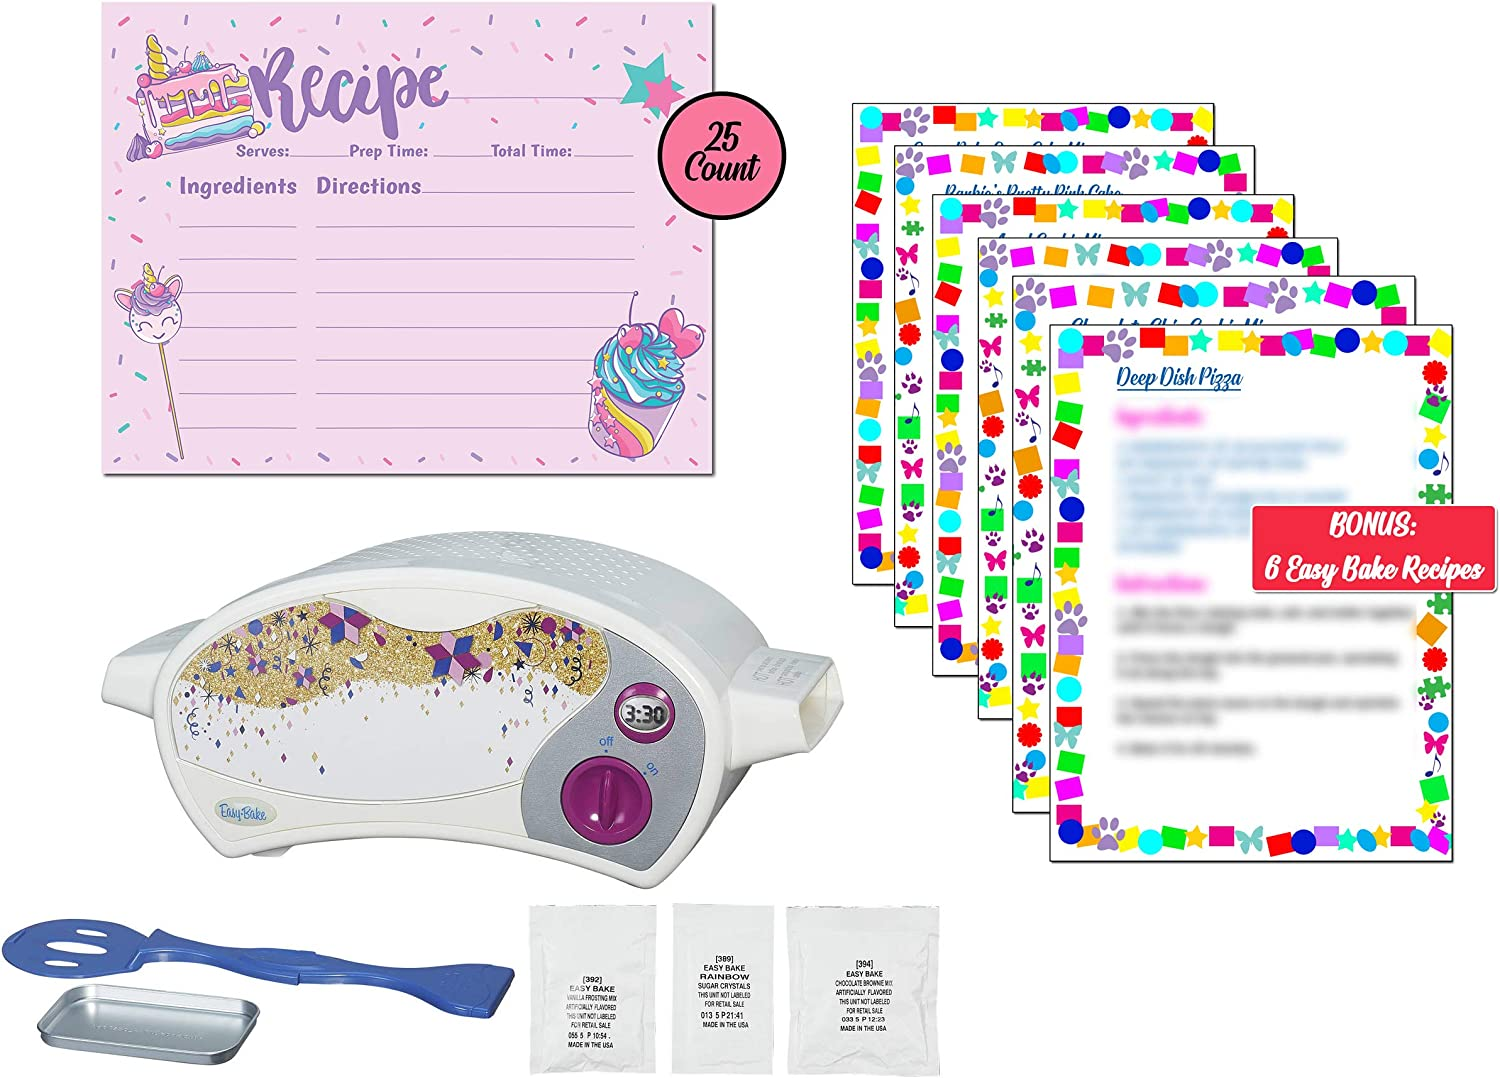 Easy Bake Oven with Easy Bake Oven Mixes and Recipe Cards, Mini Oven, Easy Bake Oven for Kids, Kids Oven, Easy Bake Oven Mixes for Kids, Easy Bake Oven Food (Recipe Cards + Bonus Recipes)